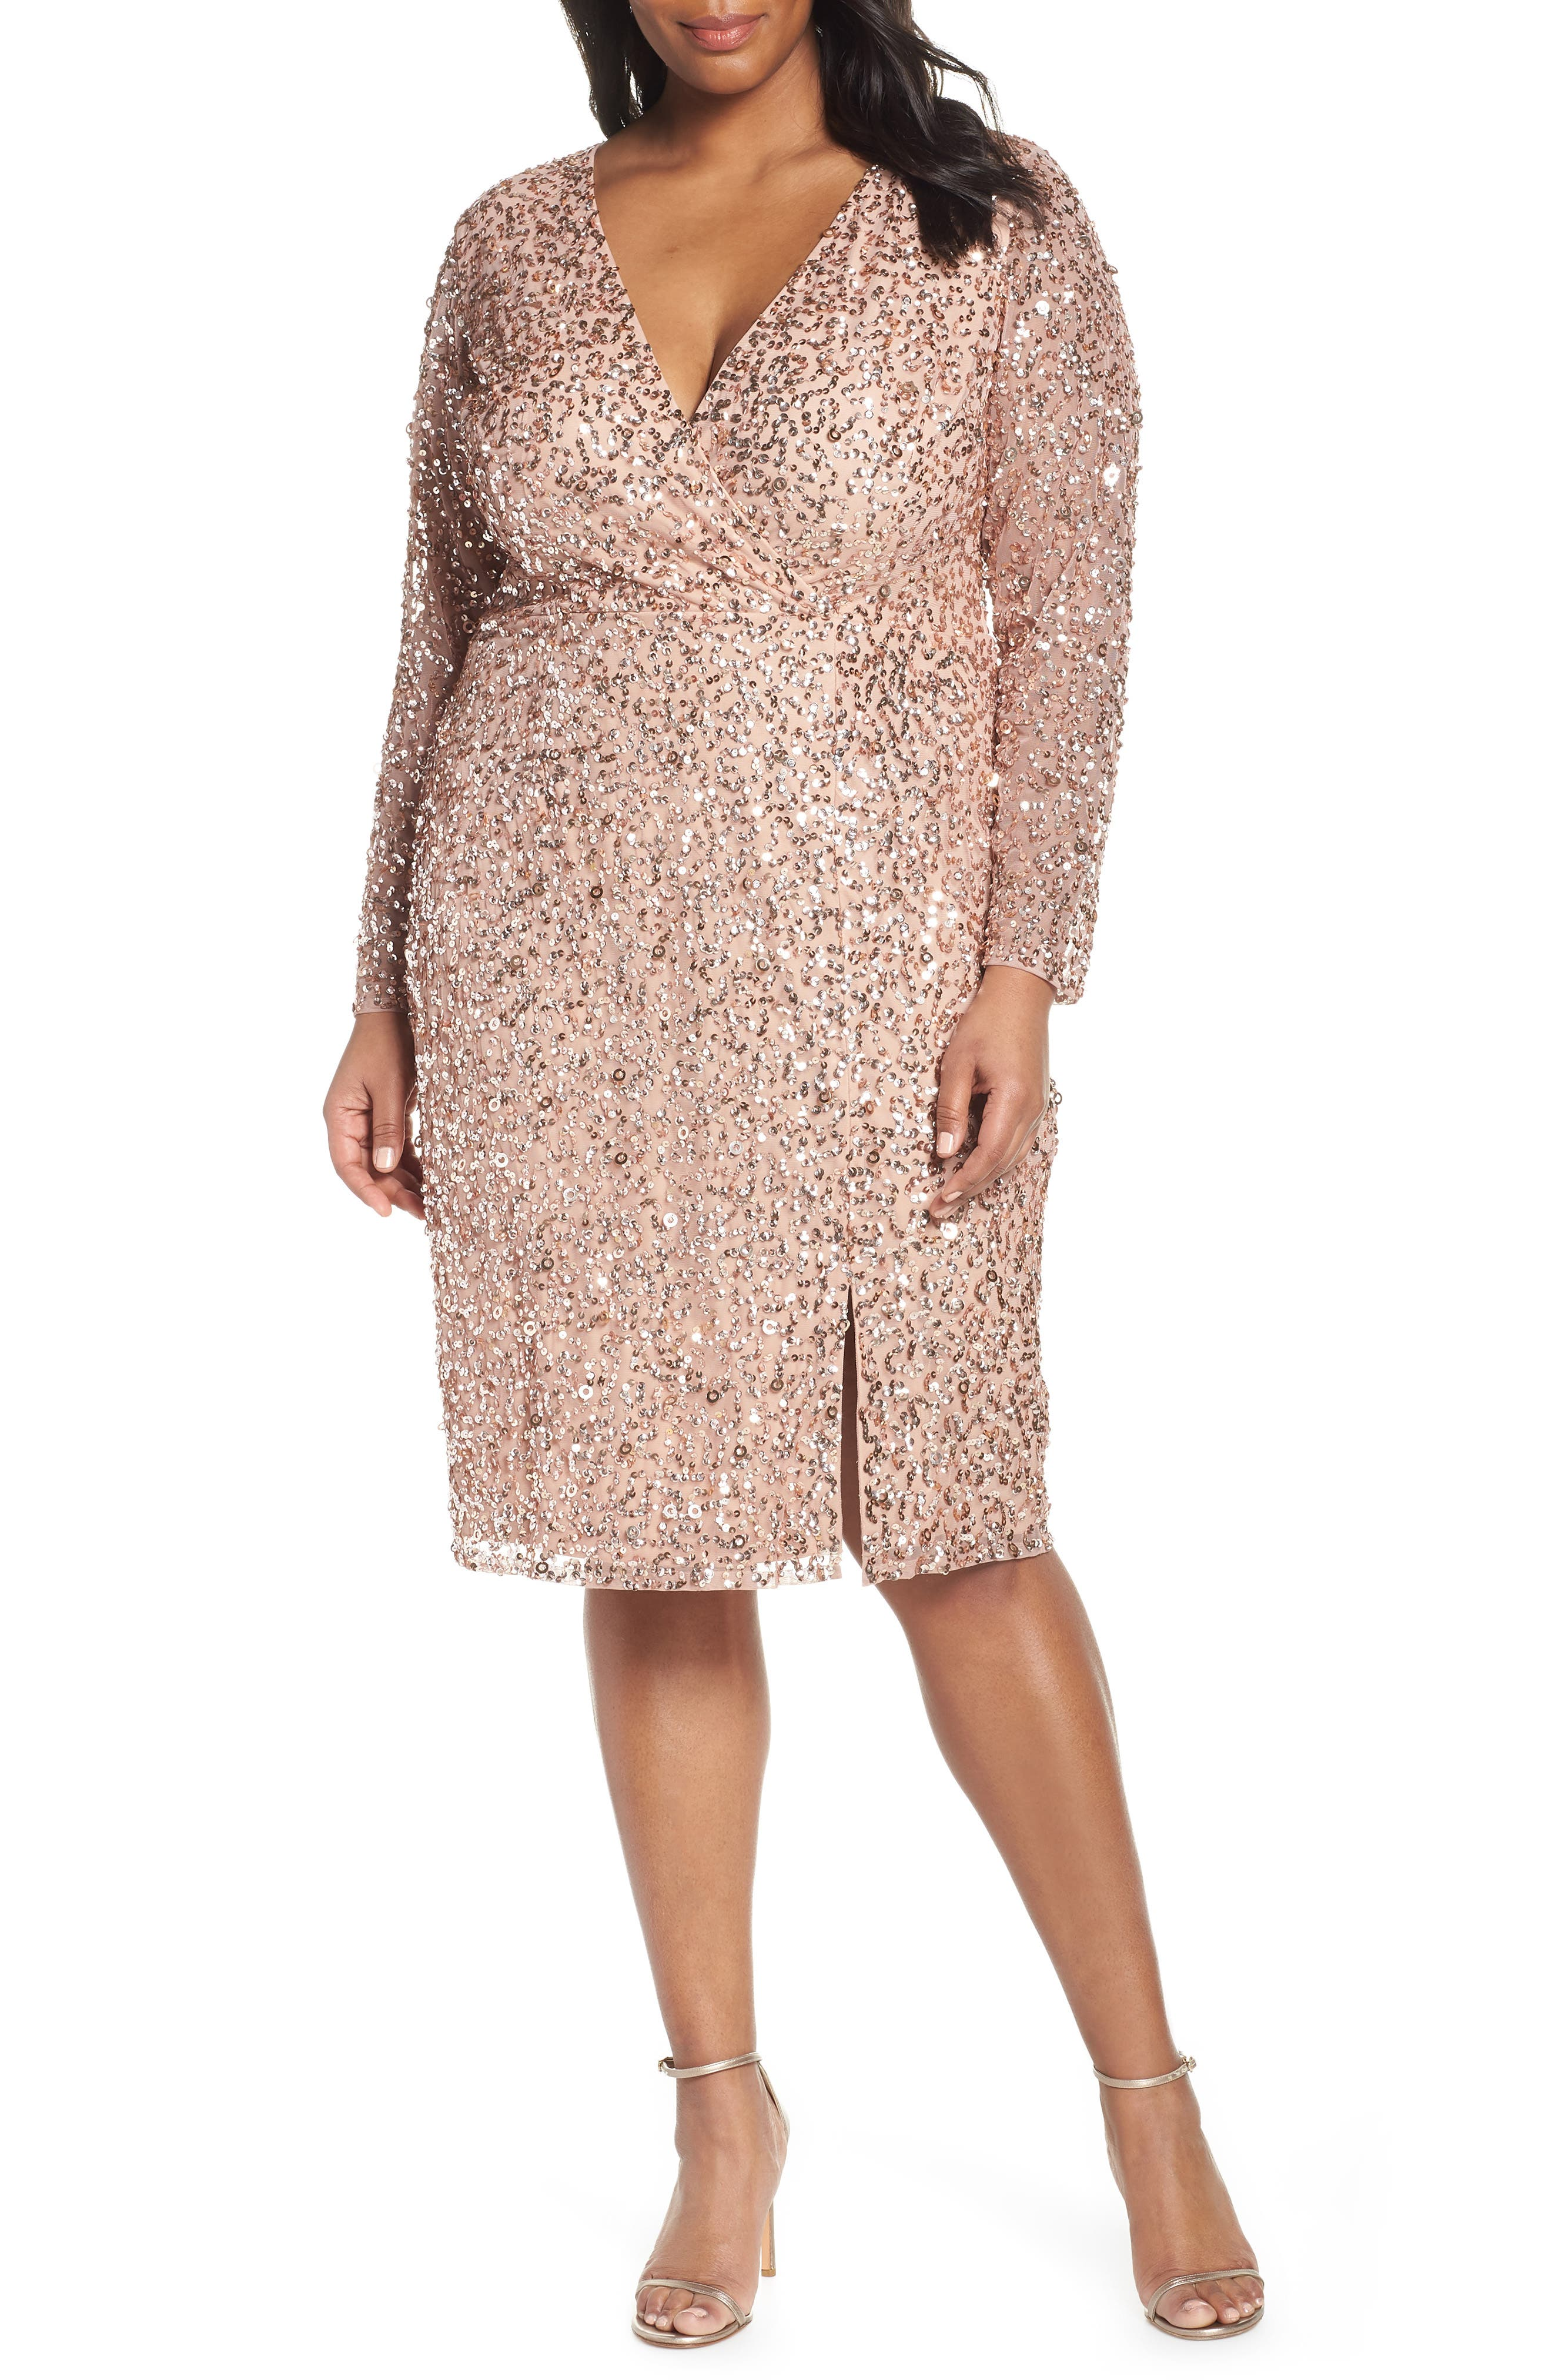 Plus Size Adrianna Papell Beaded Mesh Cocktail Dress